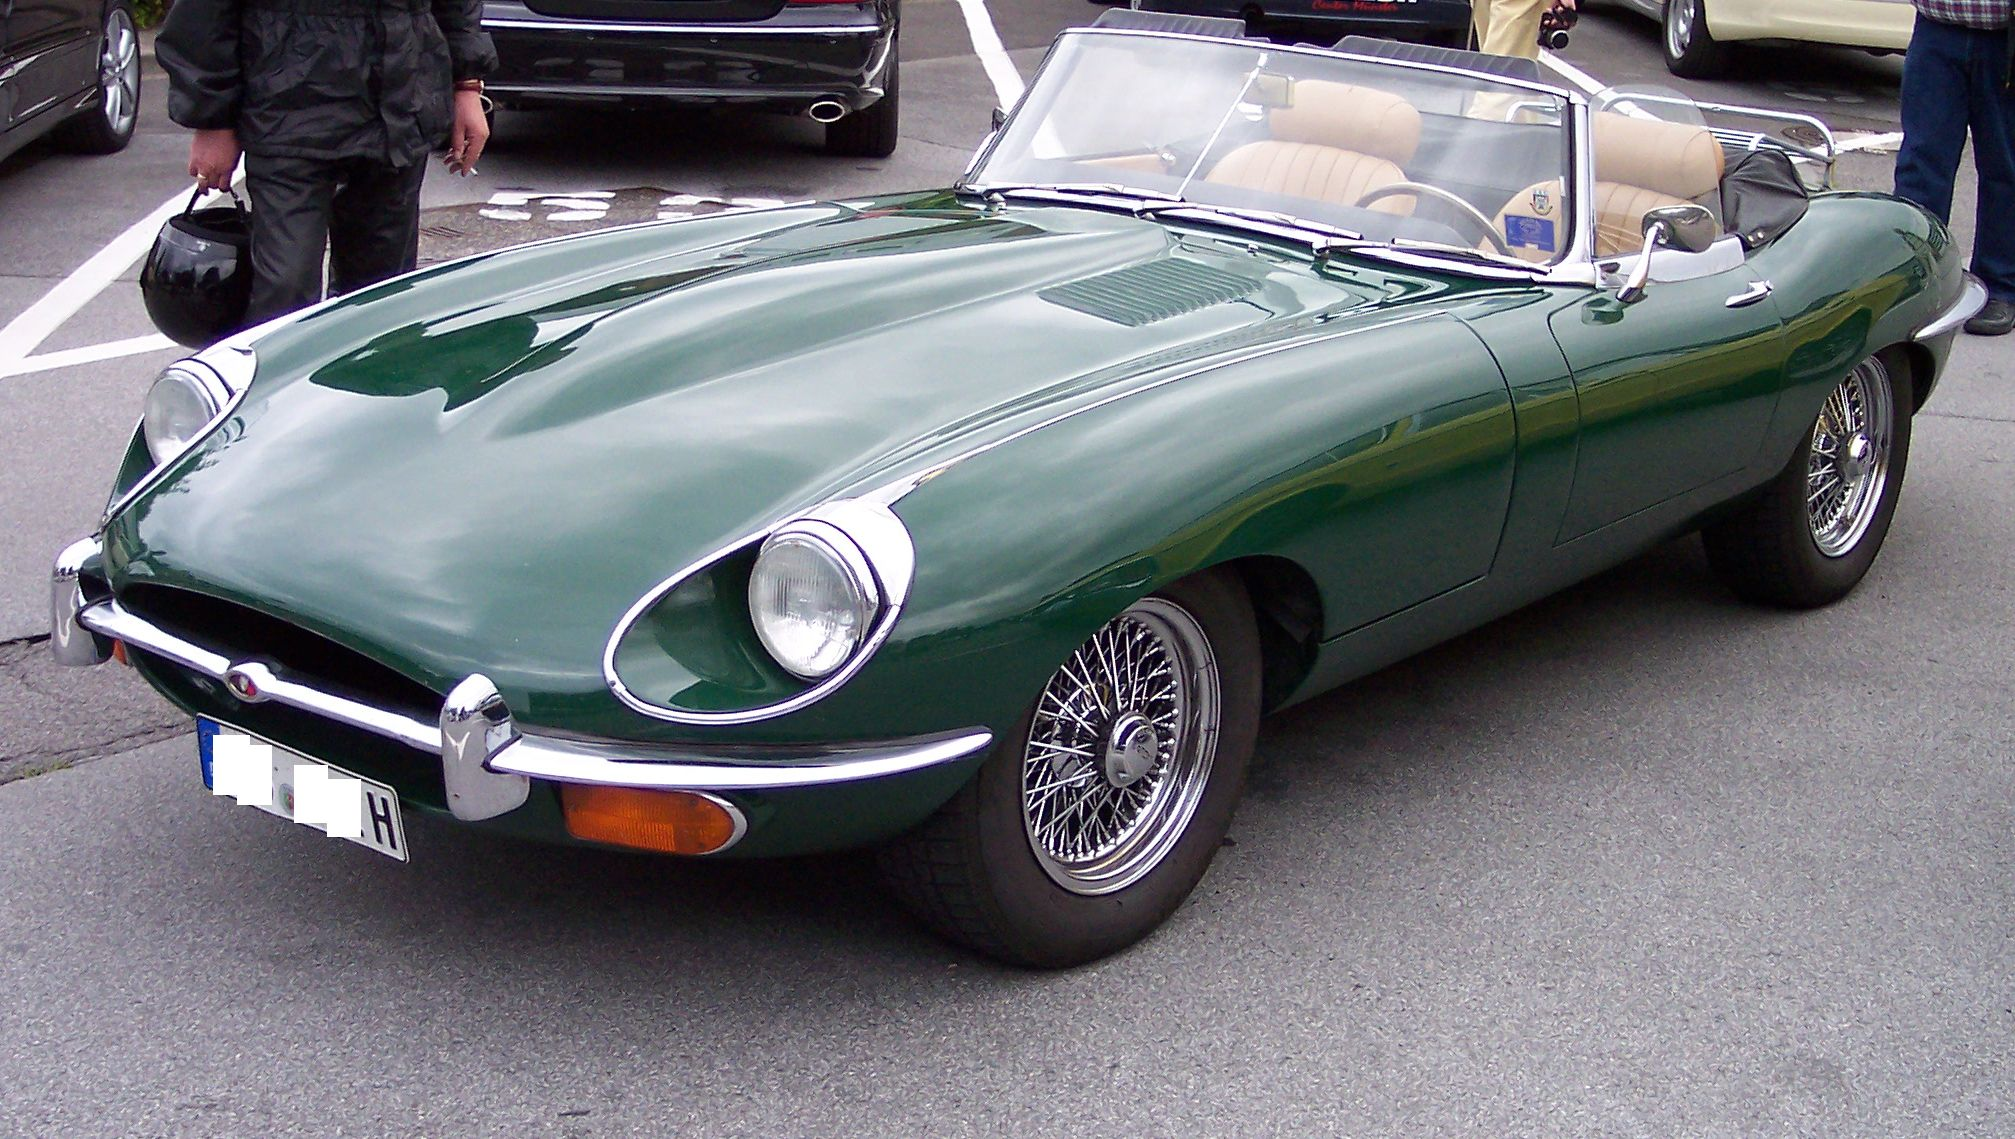 jaguar_e-type_4-2_coupe_green_vl